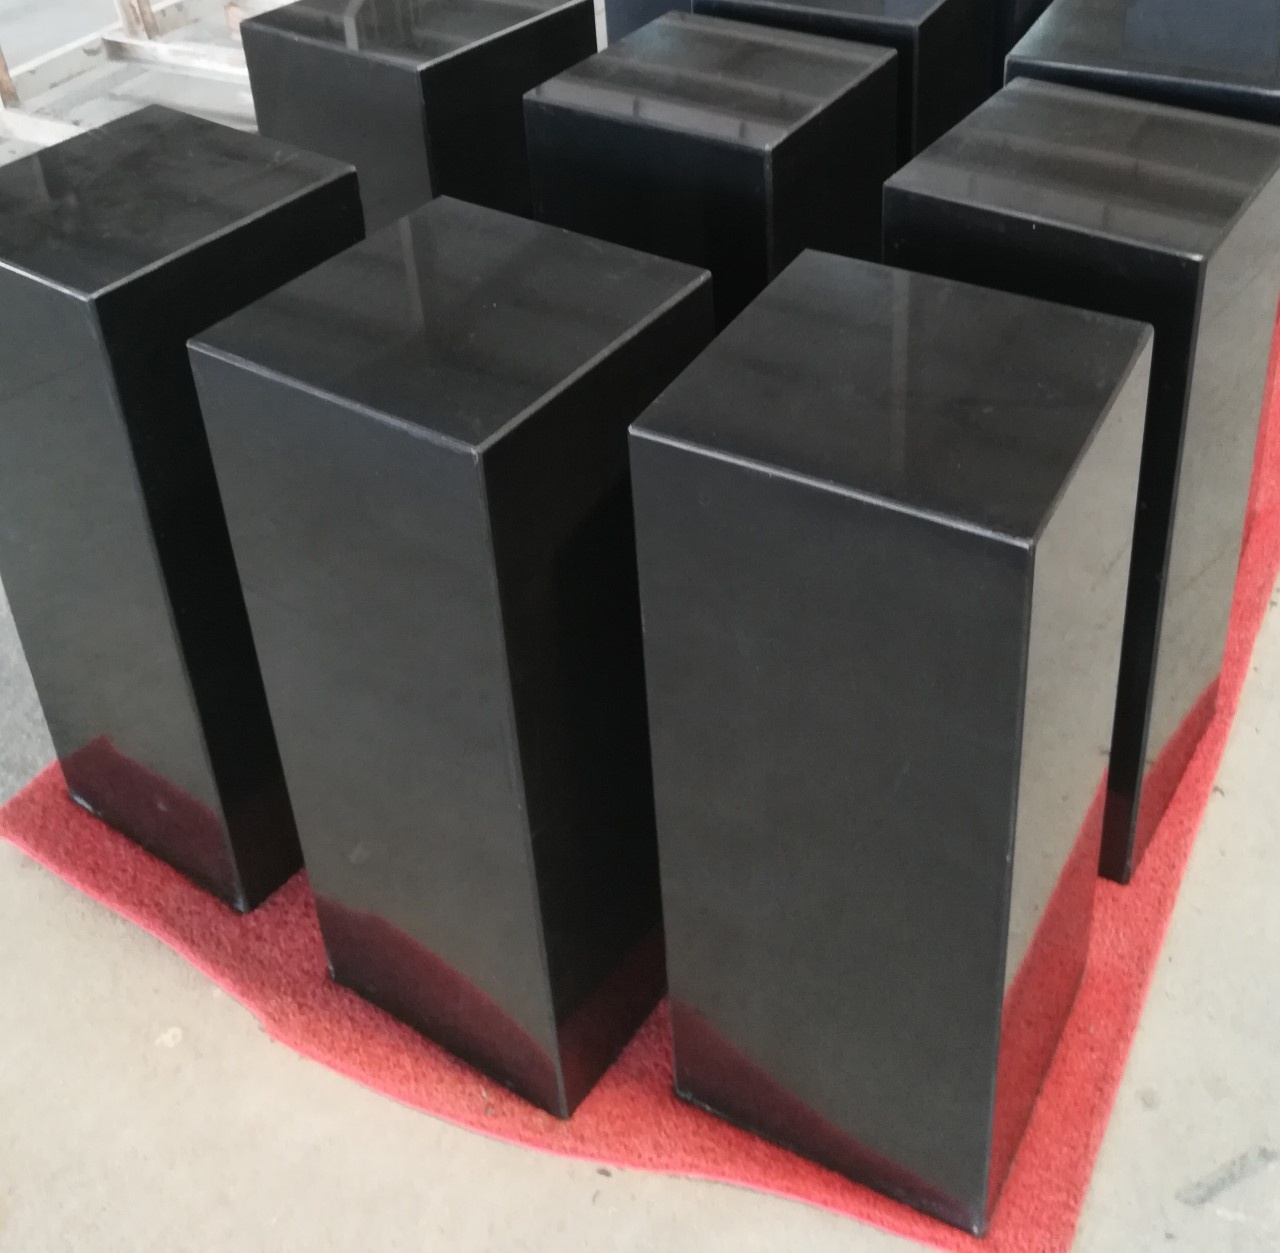 Eliassen Base black granite polished 30x30x90cm high